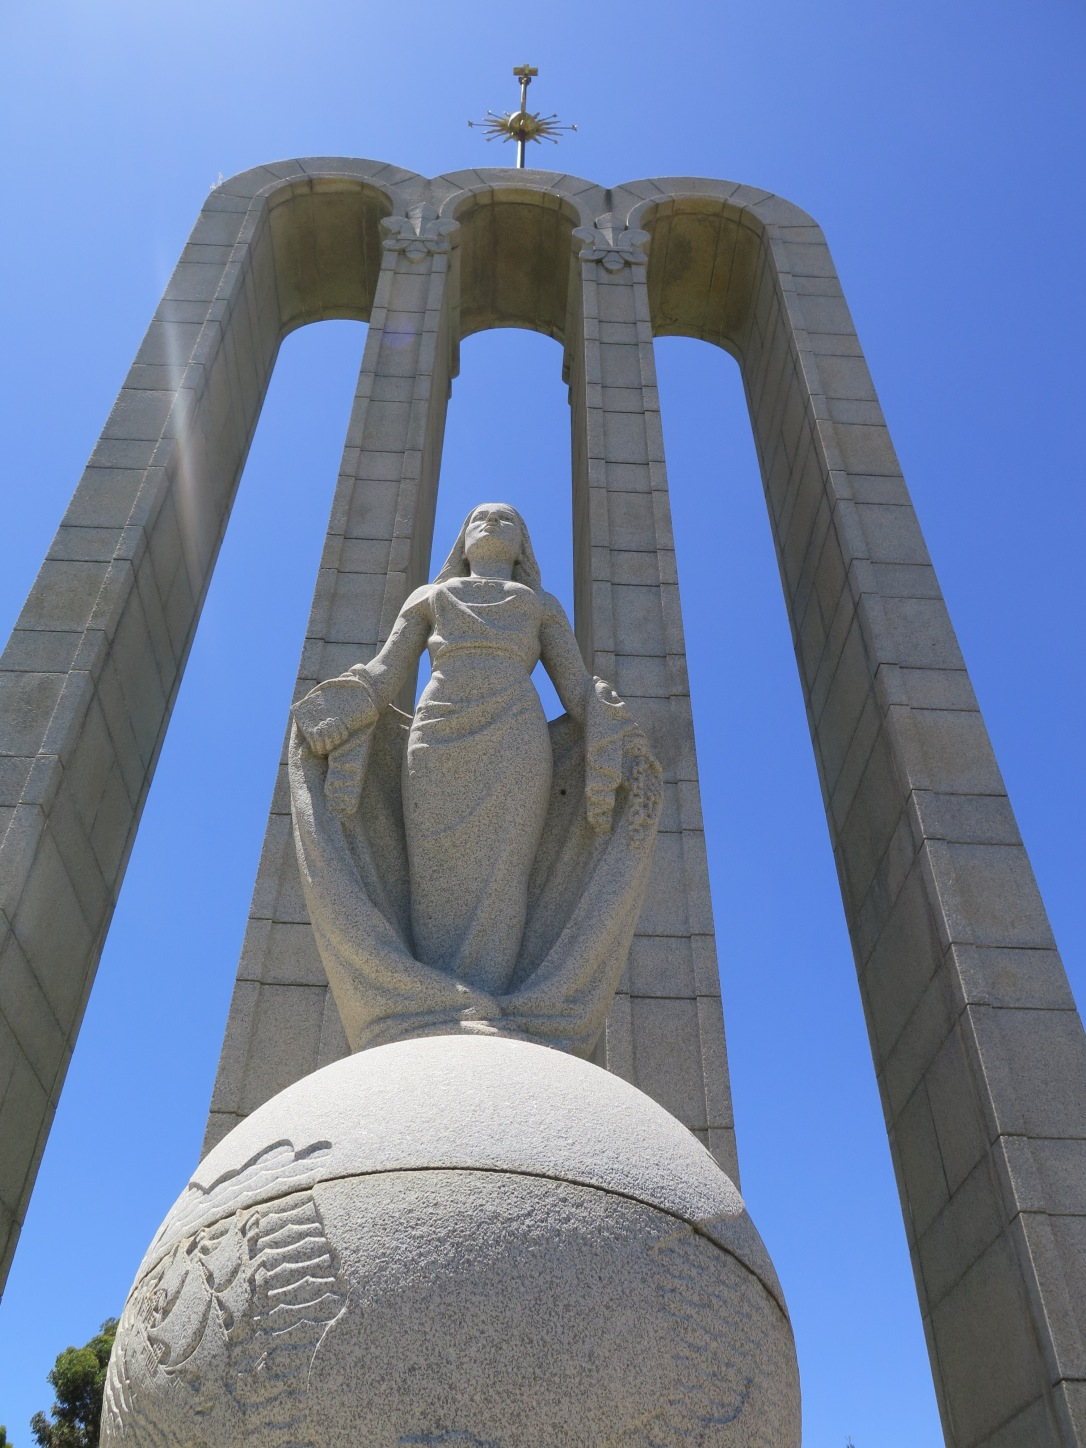 Franschhoek The Huguenot Monument near the Huguenot Museum, Huguenot woman standing on globe with three arches and blue sky